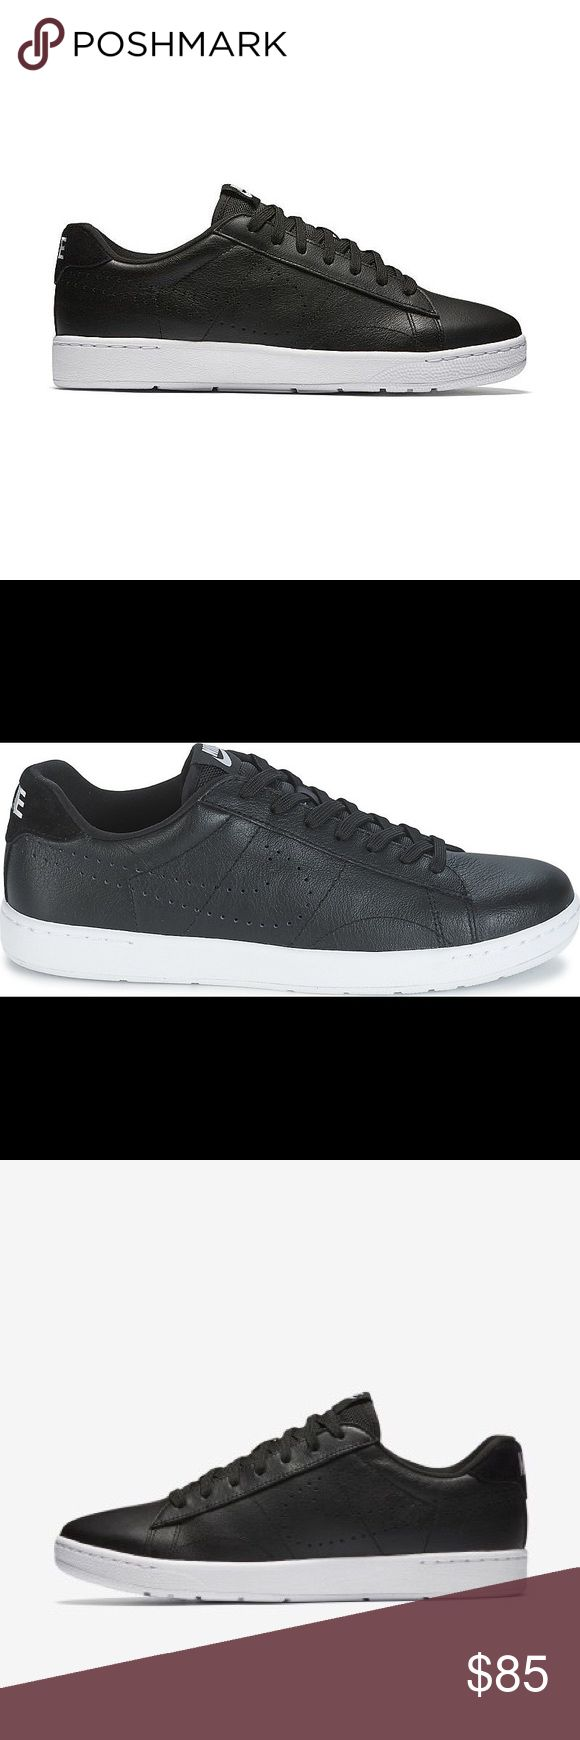 NIKE TENNIS CLASSIC ULTRA LEATHER SHOES MEN BLACK 100% Authentic!!! * Nike Tennis Classic Ultra Black Leather/White Nike #749644 004 Classic court-inspired low top silhouette in all leather for a smooth look. For the suave only. Great casual sneaker that goes great with jeans for a night out on the town. Ignite your style with some with an old school tennis icon with the Men's Nike Tennis Classic Casual Shoes.  NO BOX Nike Shoes Sneakers